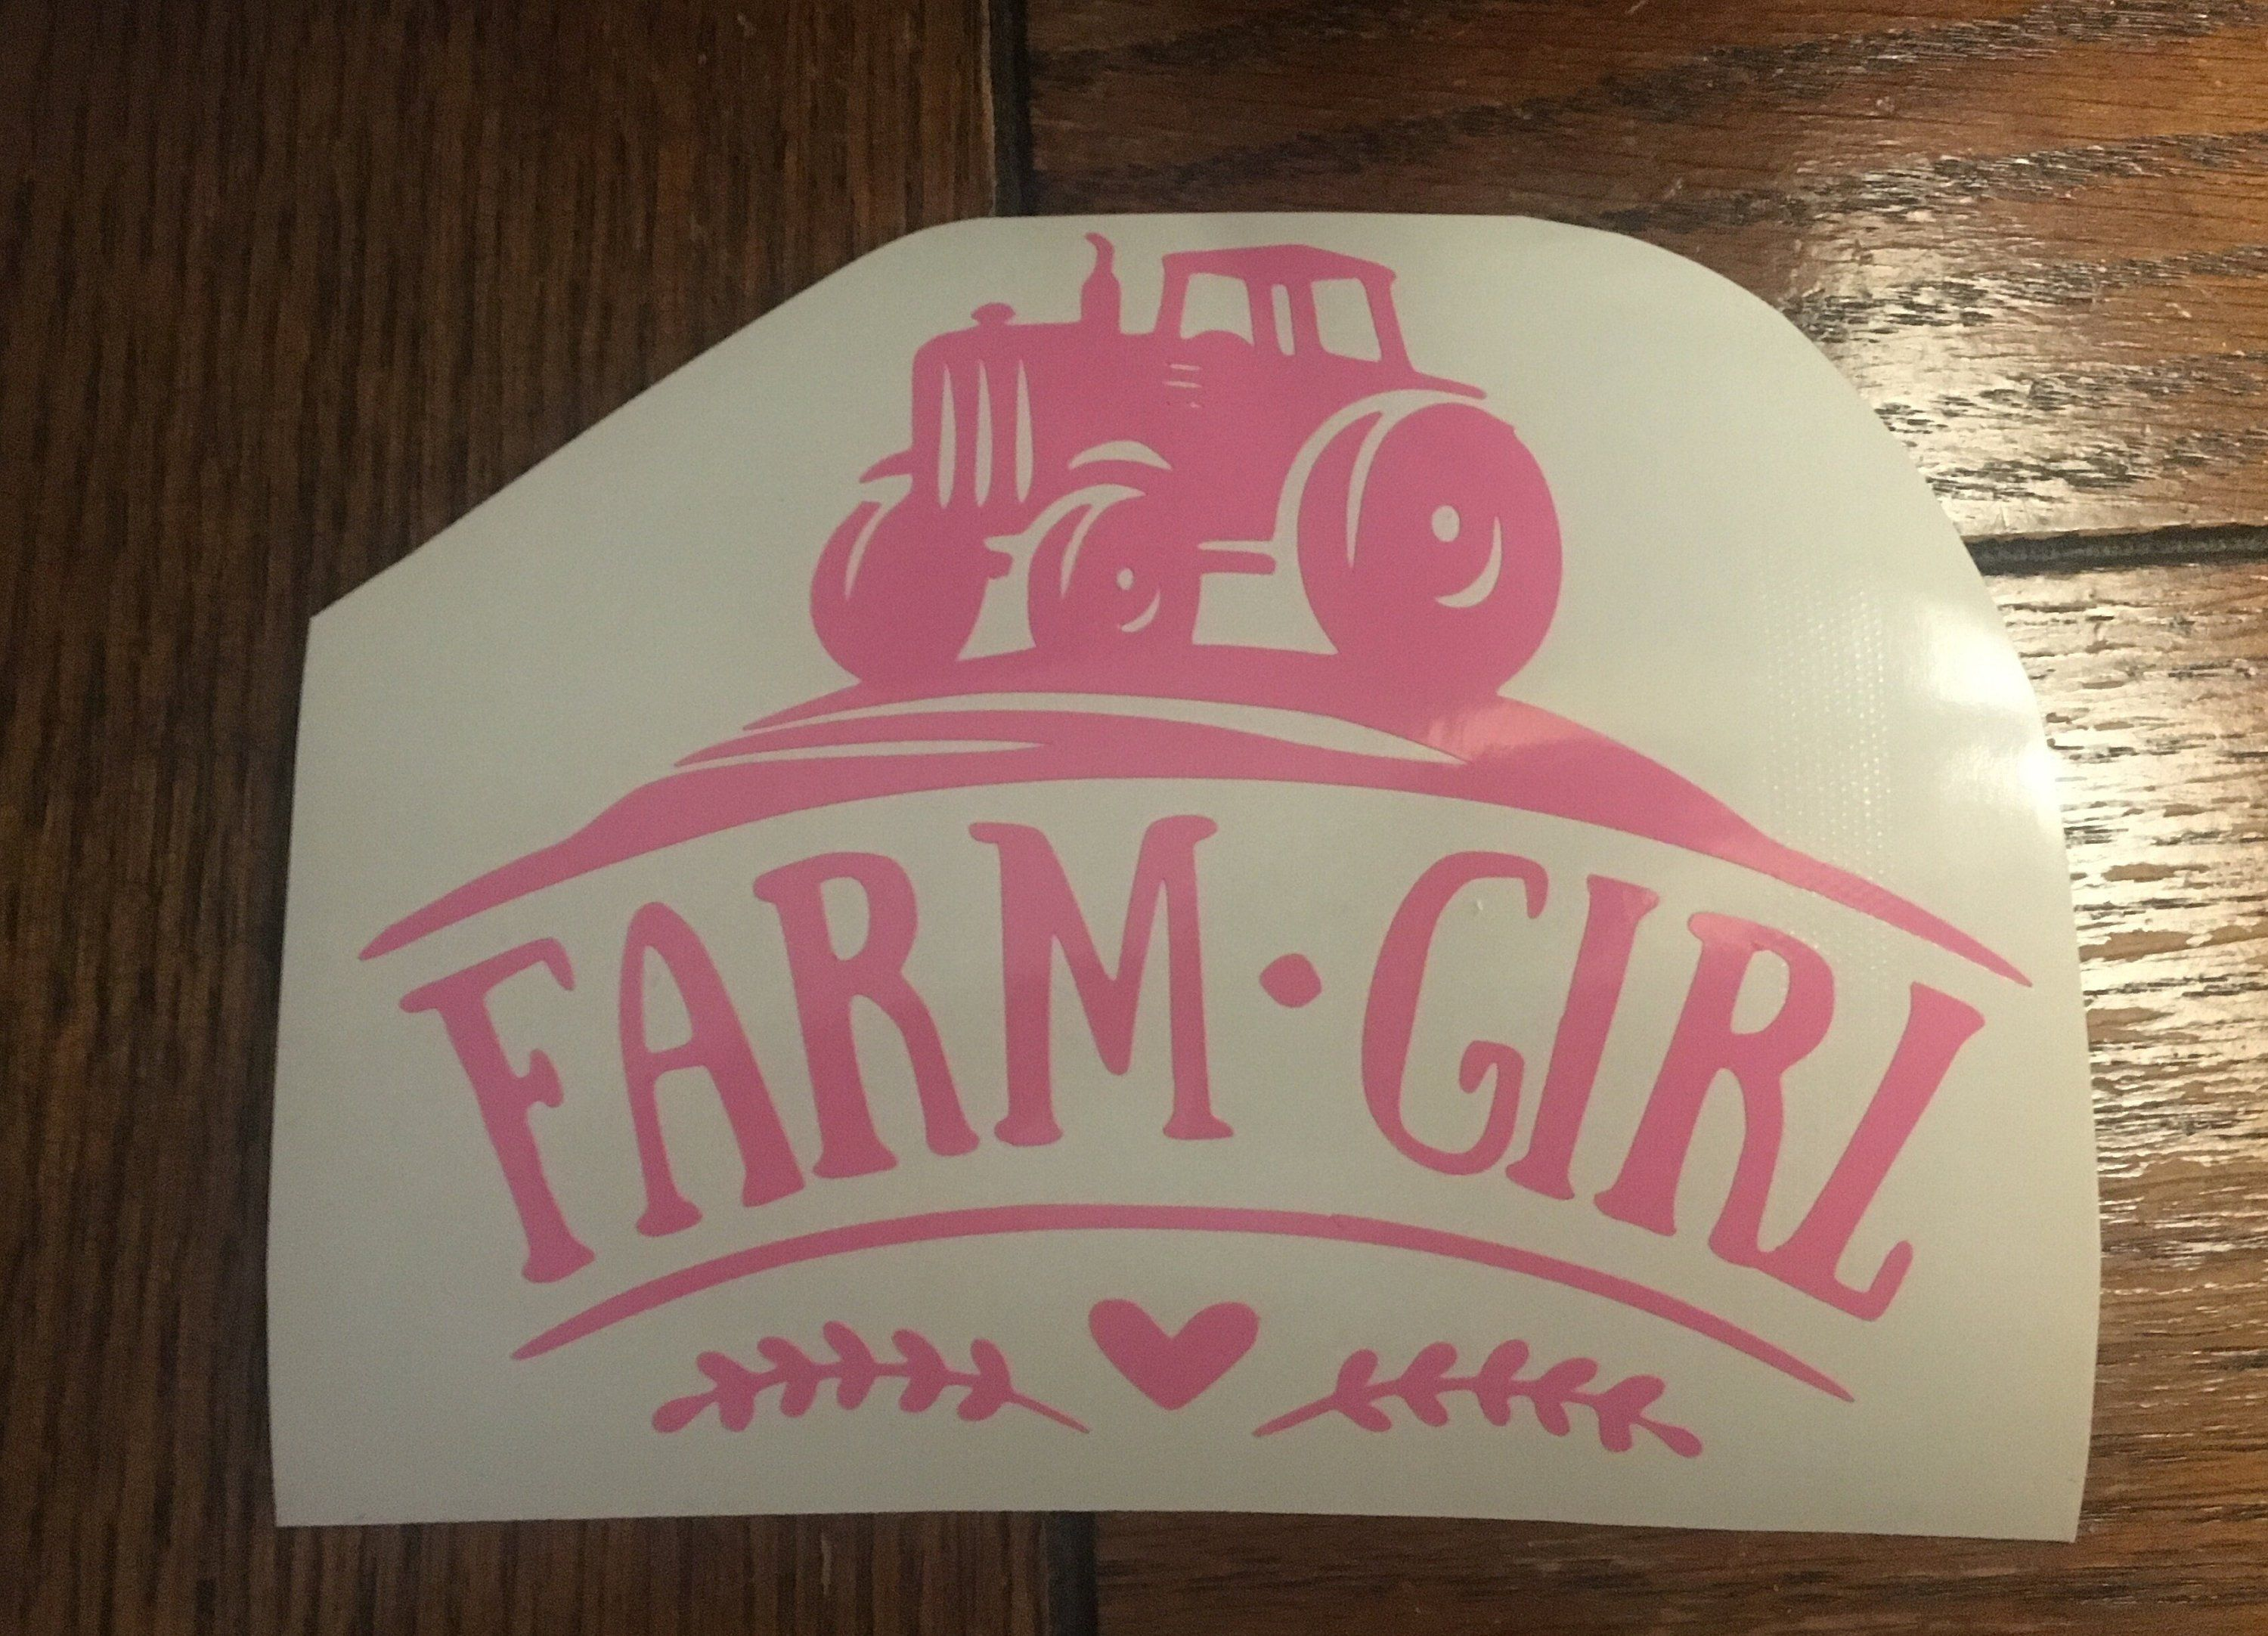 Farm Girl Tractor Vinyl Decal Sticker Car Decal Country Girl Gift For Her Laptop Sticker Window Decal Farmer Girl Decals Country Girl Decal Vinyl Decals [ 2164 x 3000 Pixel ]